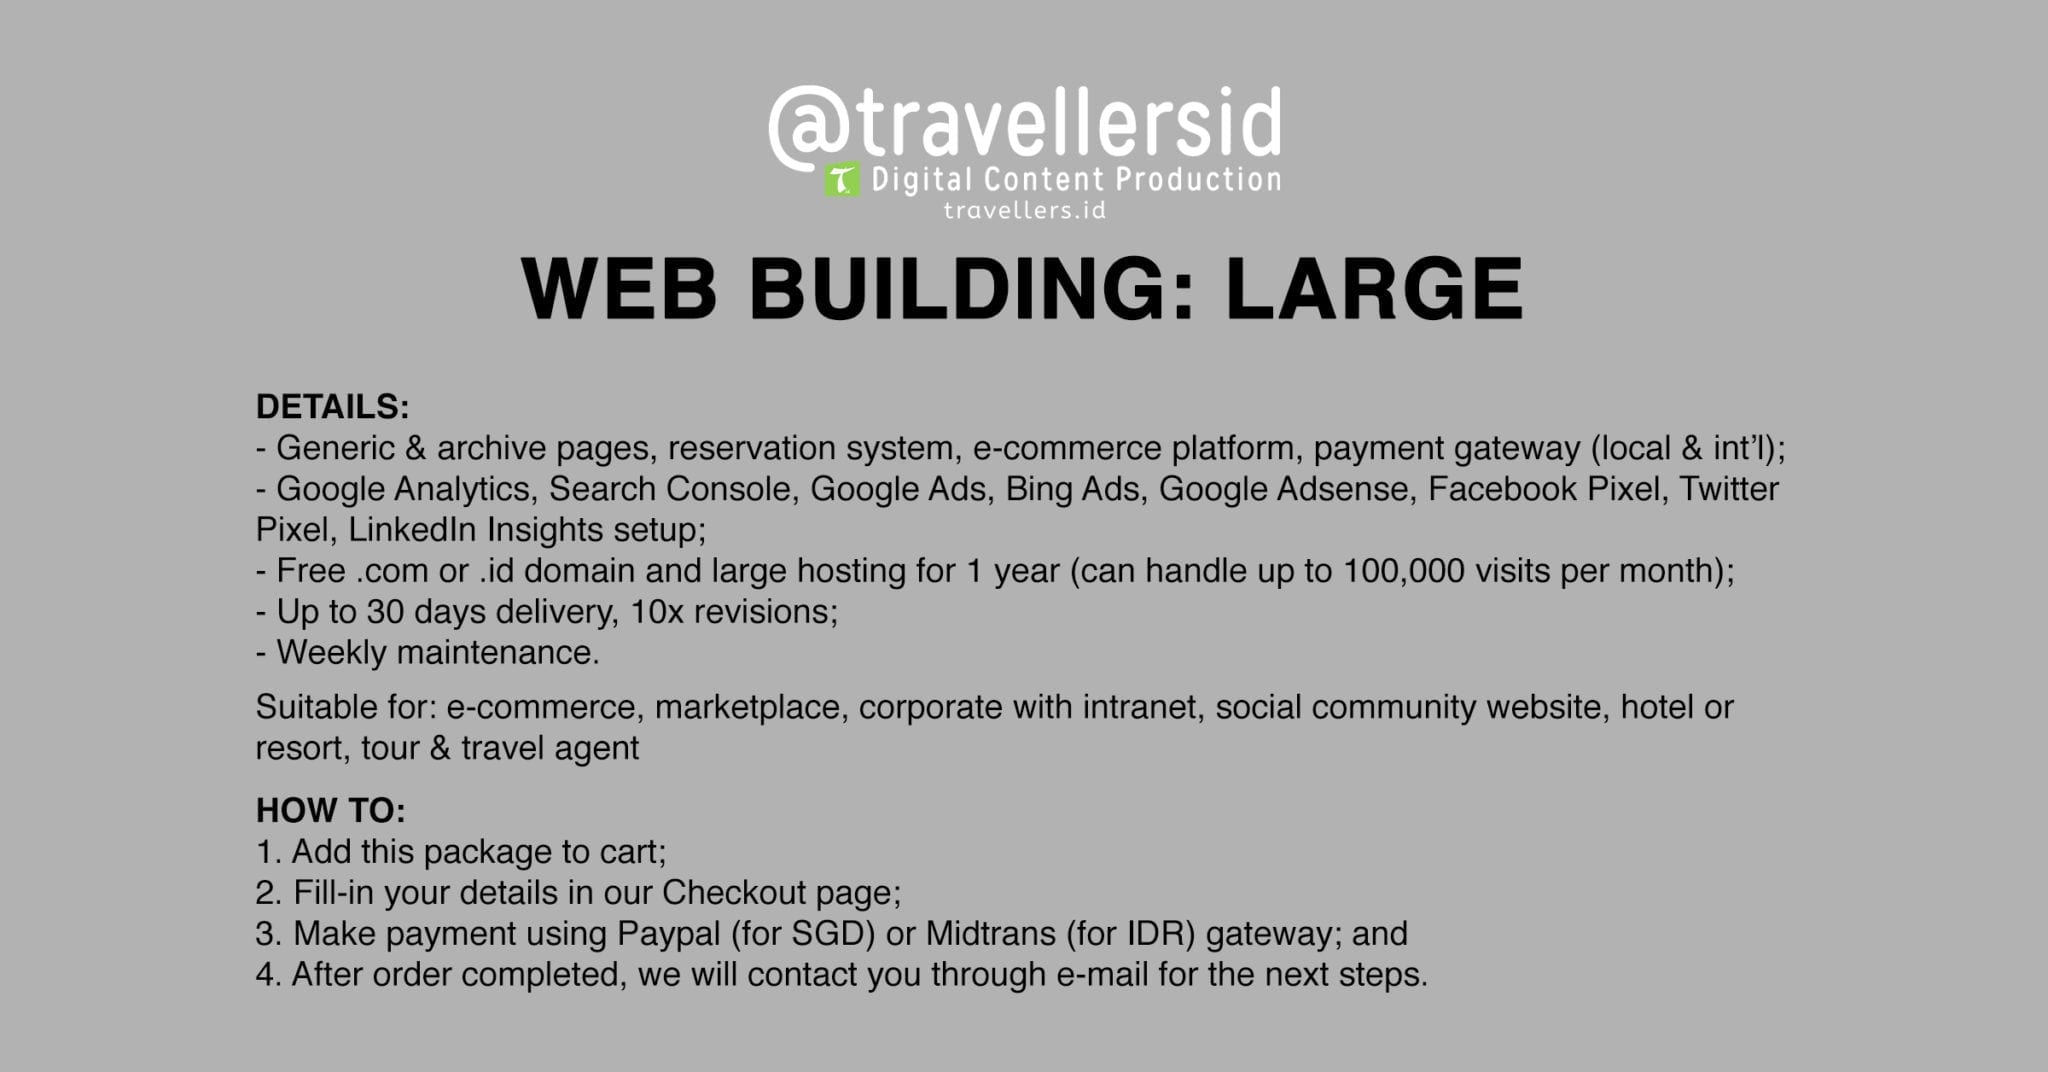 @TravellersID Web Building Services - Large